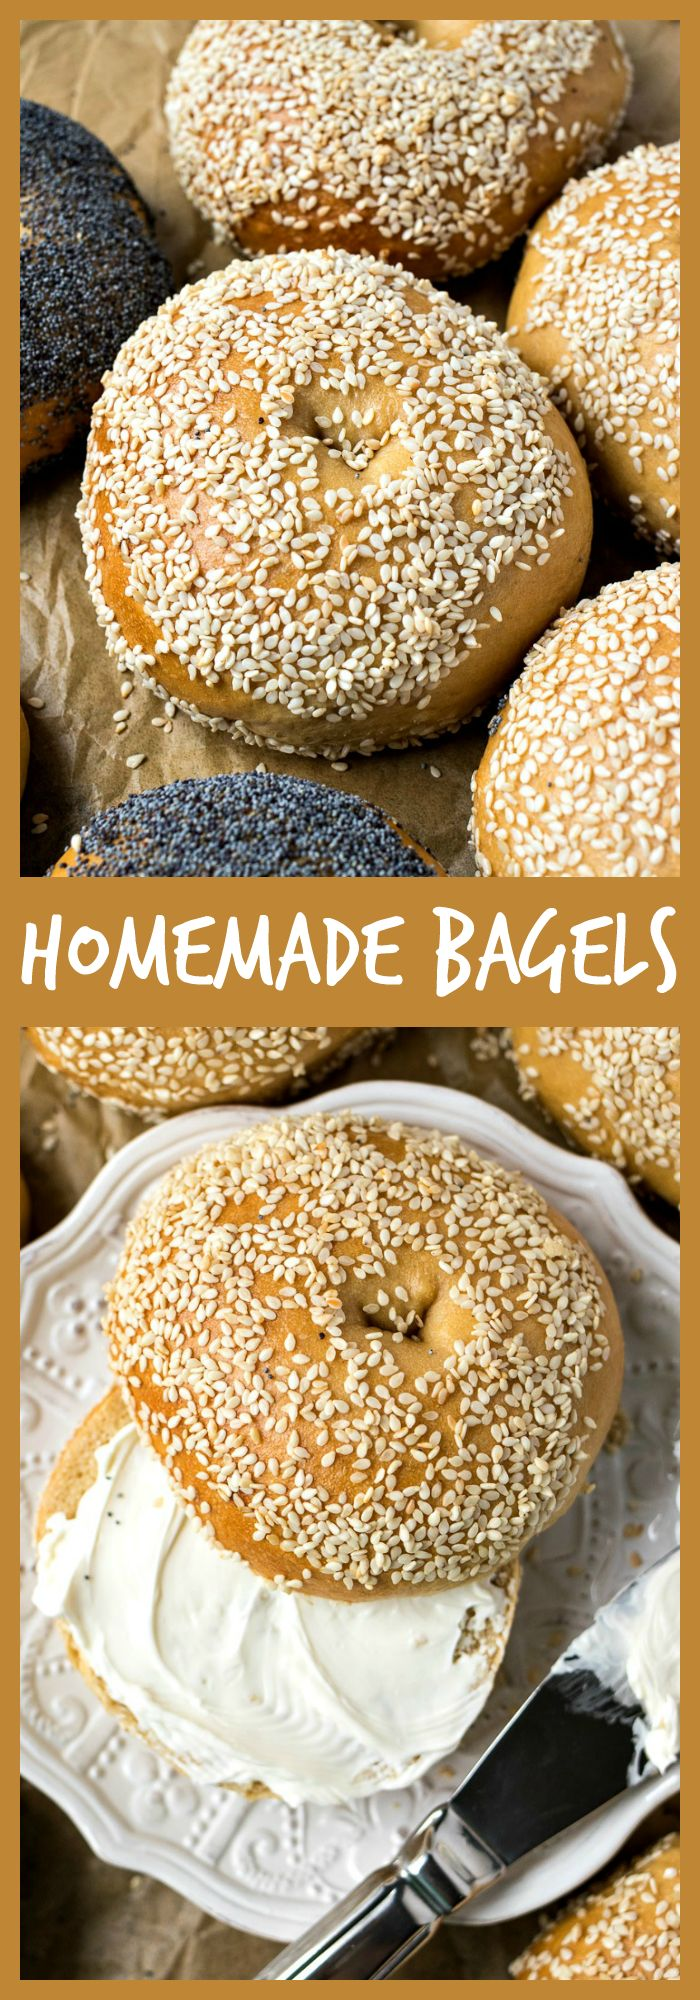 Homemade Bagels – The chewiest homemade bagels you'll ever make, with the perfect crispy, shiny shell on the outside. You won't ever want to toast your bagels again after trying these! #bagels #brunch #breakfast #bread #recipe